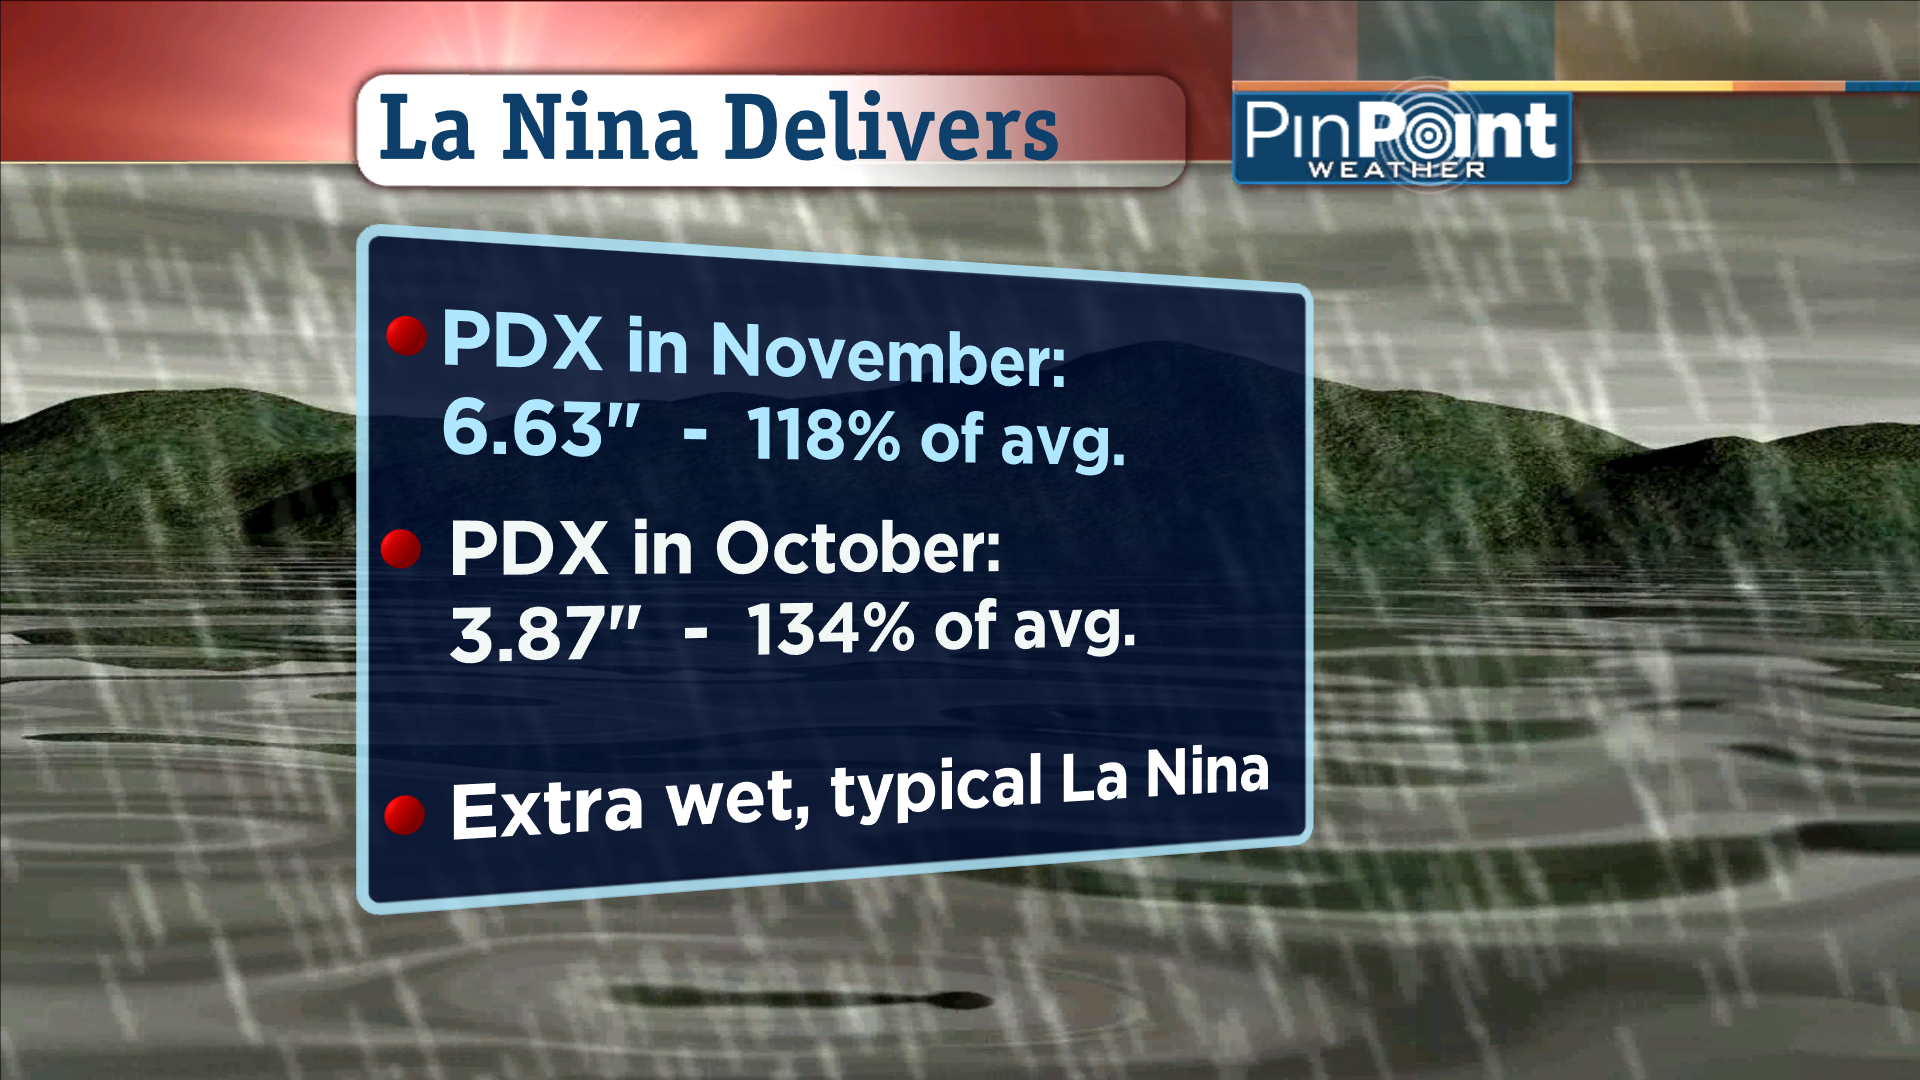 La Nina Delivers in the NW – So Far